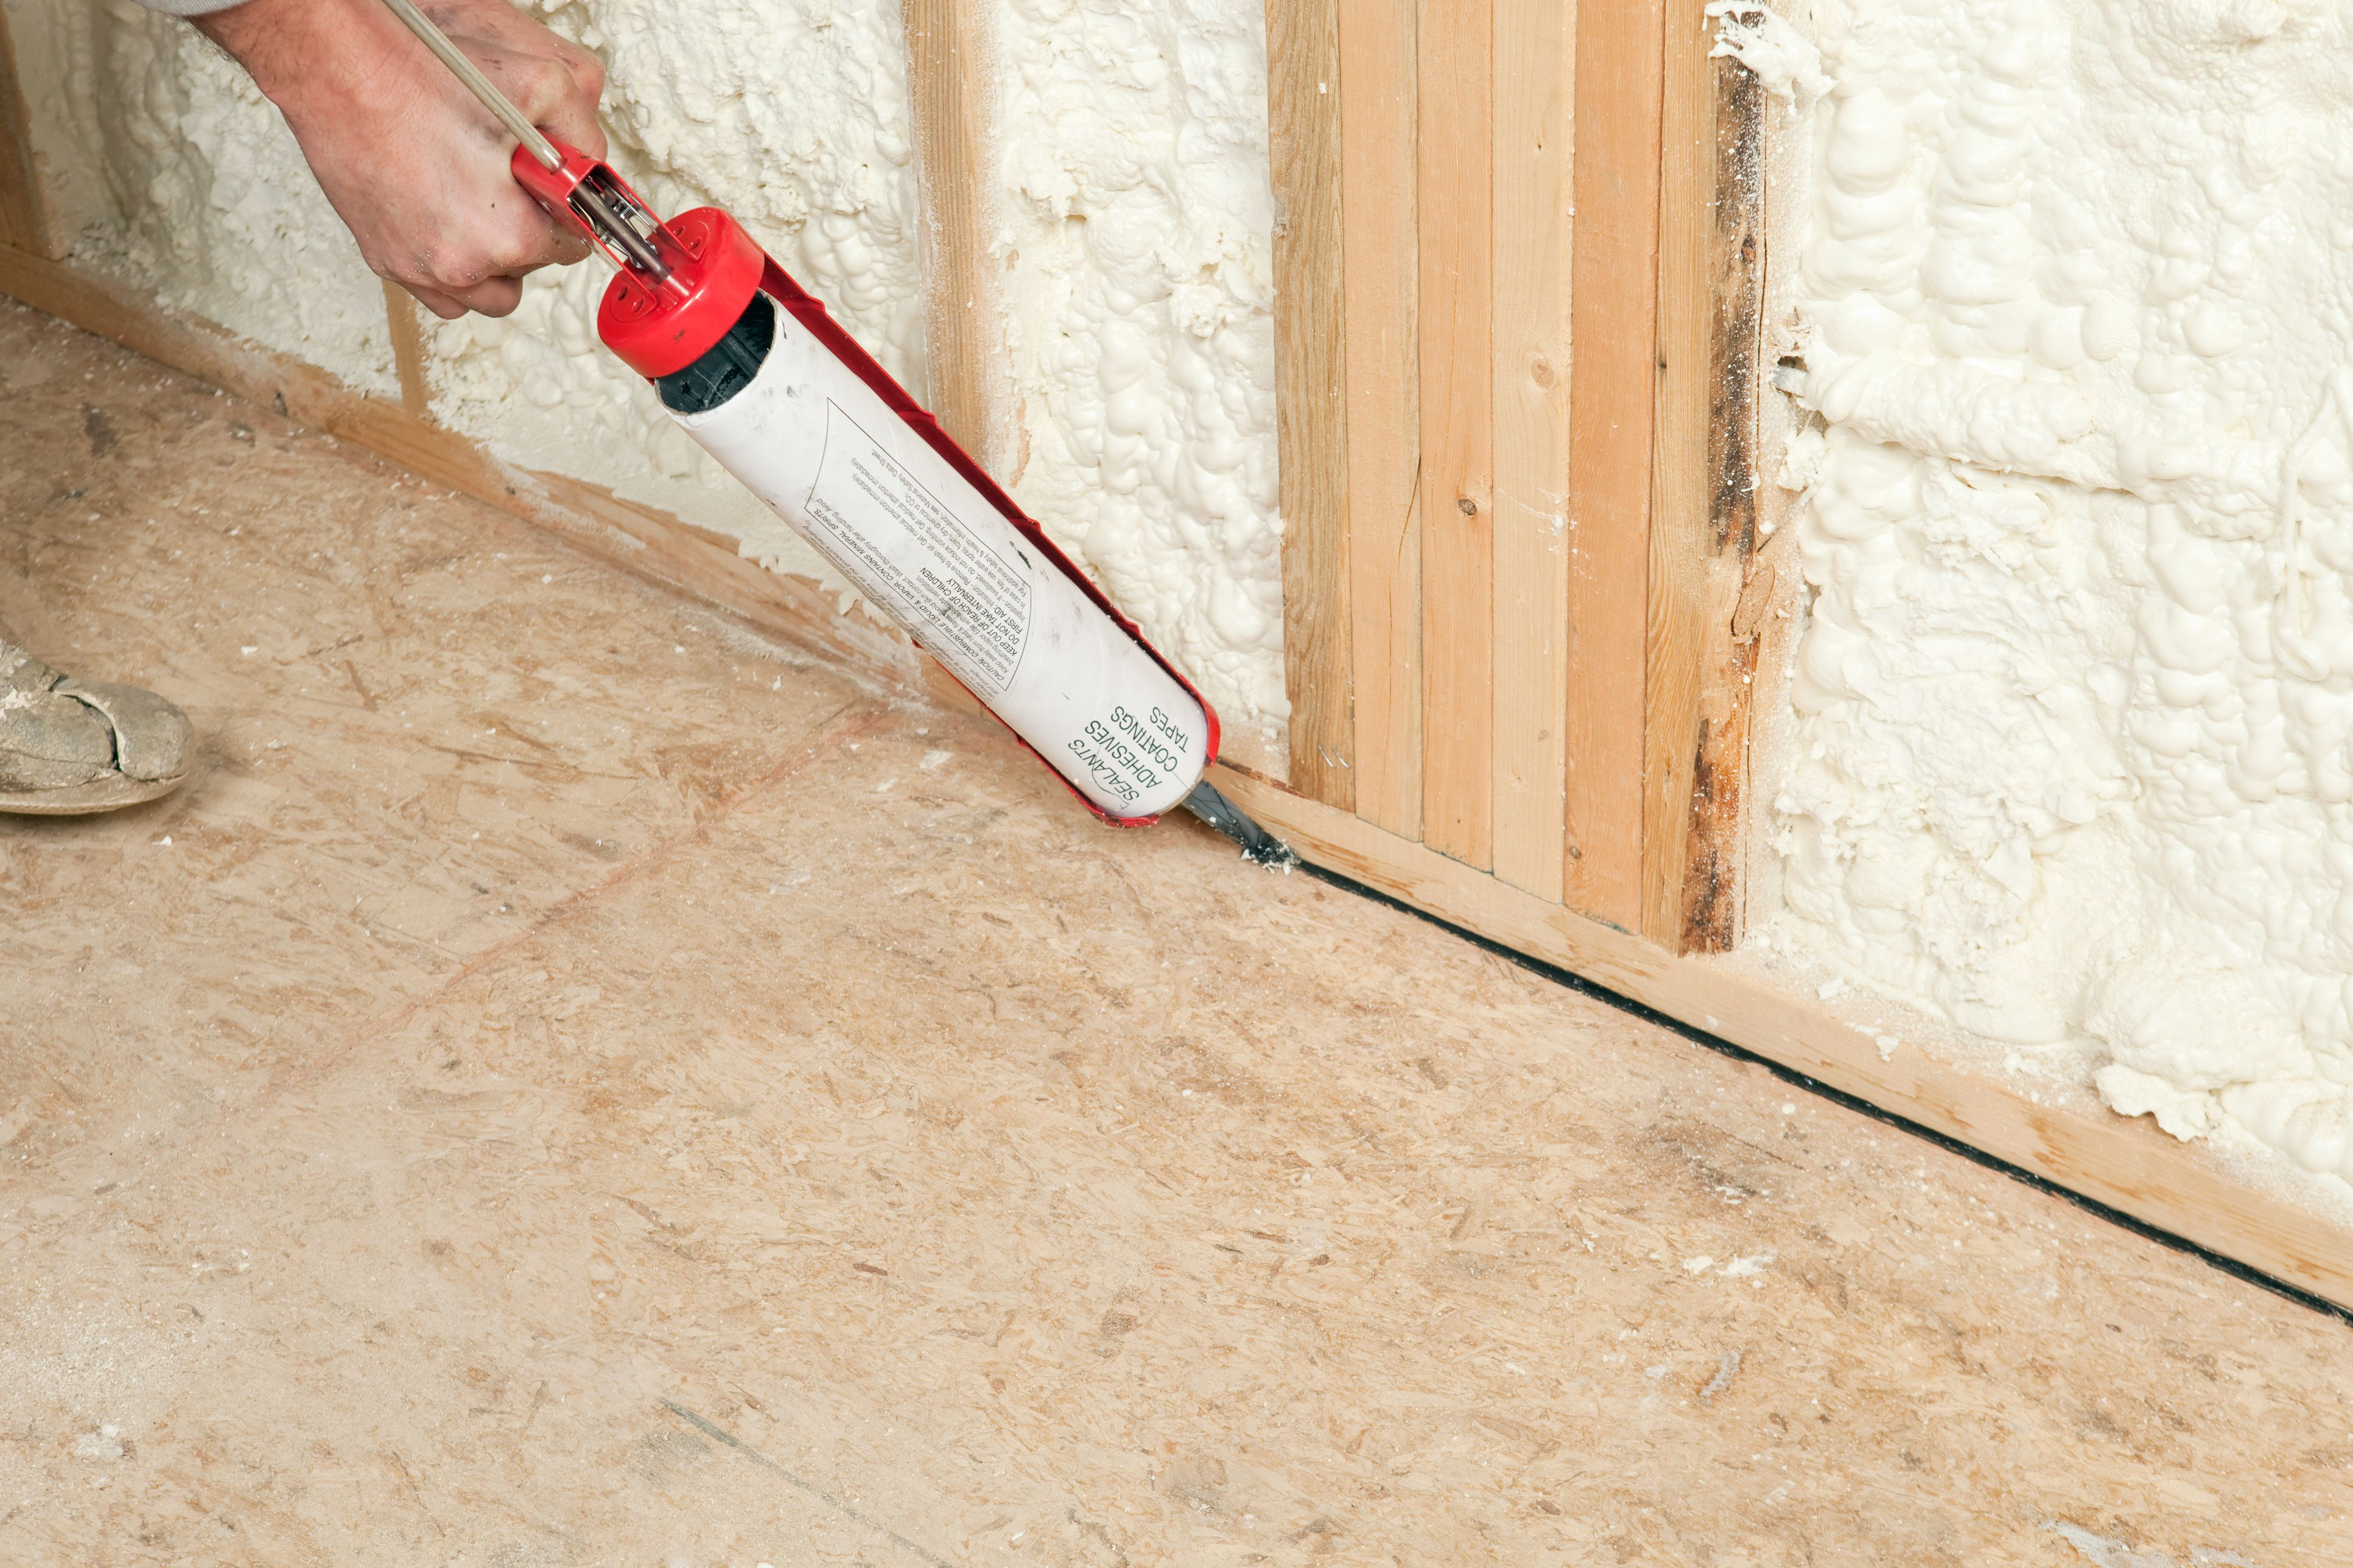 nail size for hardwood flooring of osb oriented strand board sub flooring within worker caulking wall plate to subfloor 185099682 57fa64803df78c690f7666e2